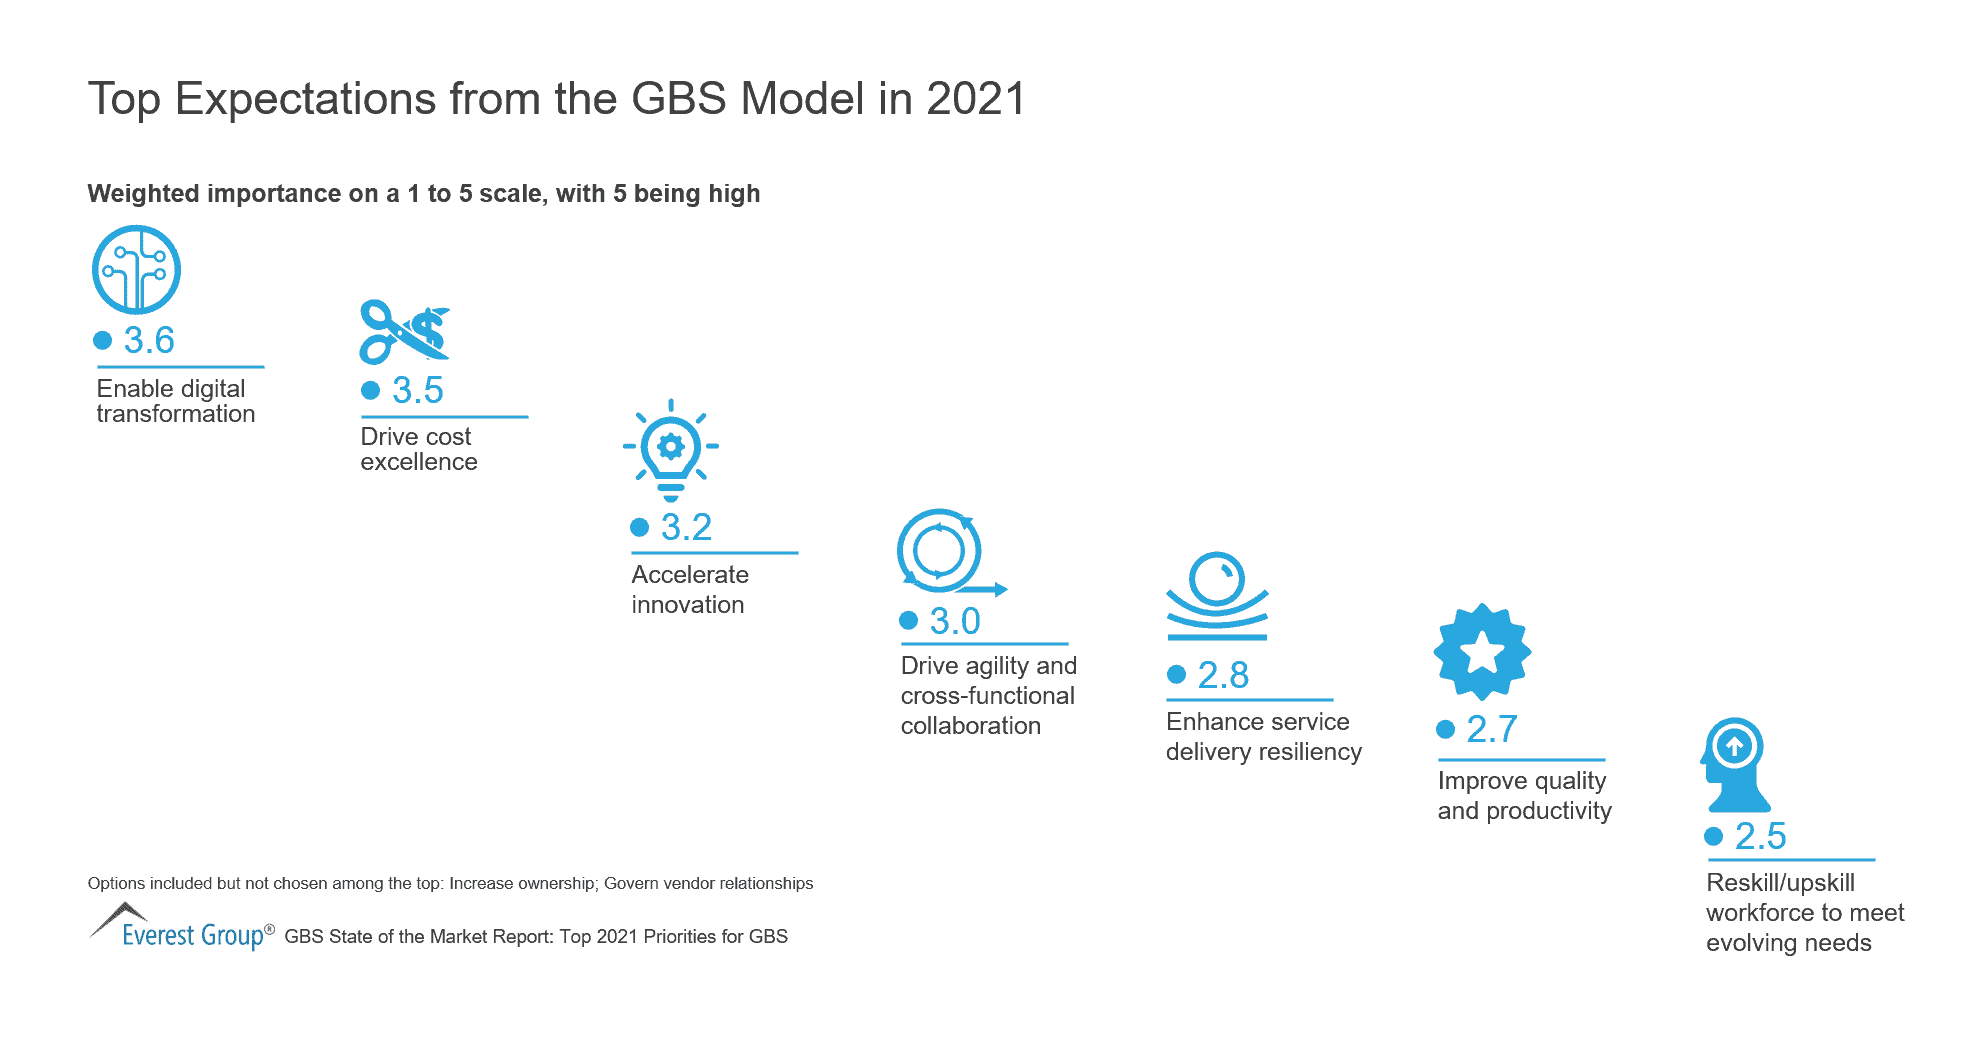 Top Expectations for the GBS Model in 2021